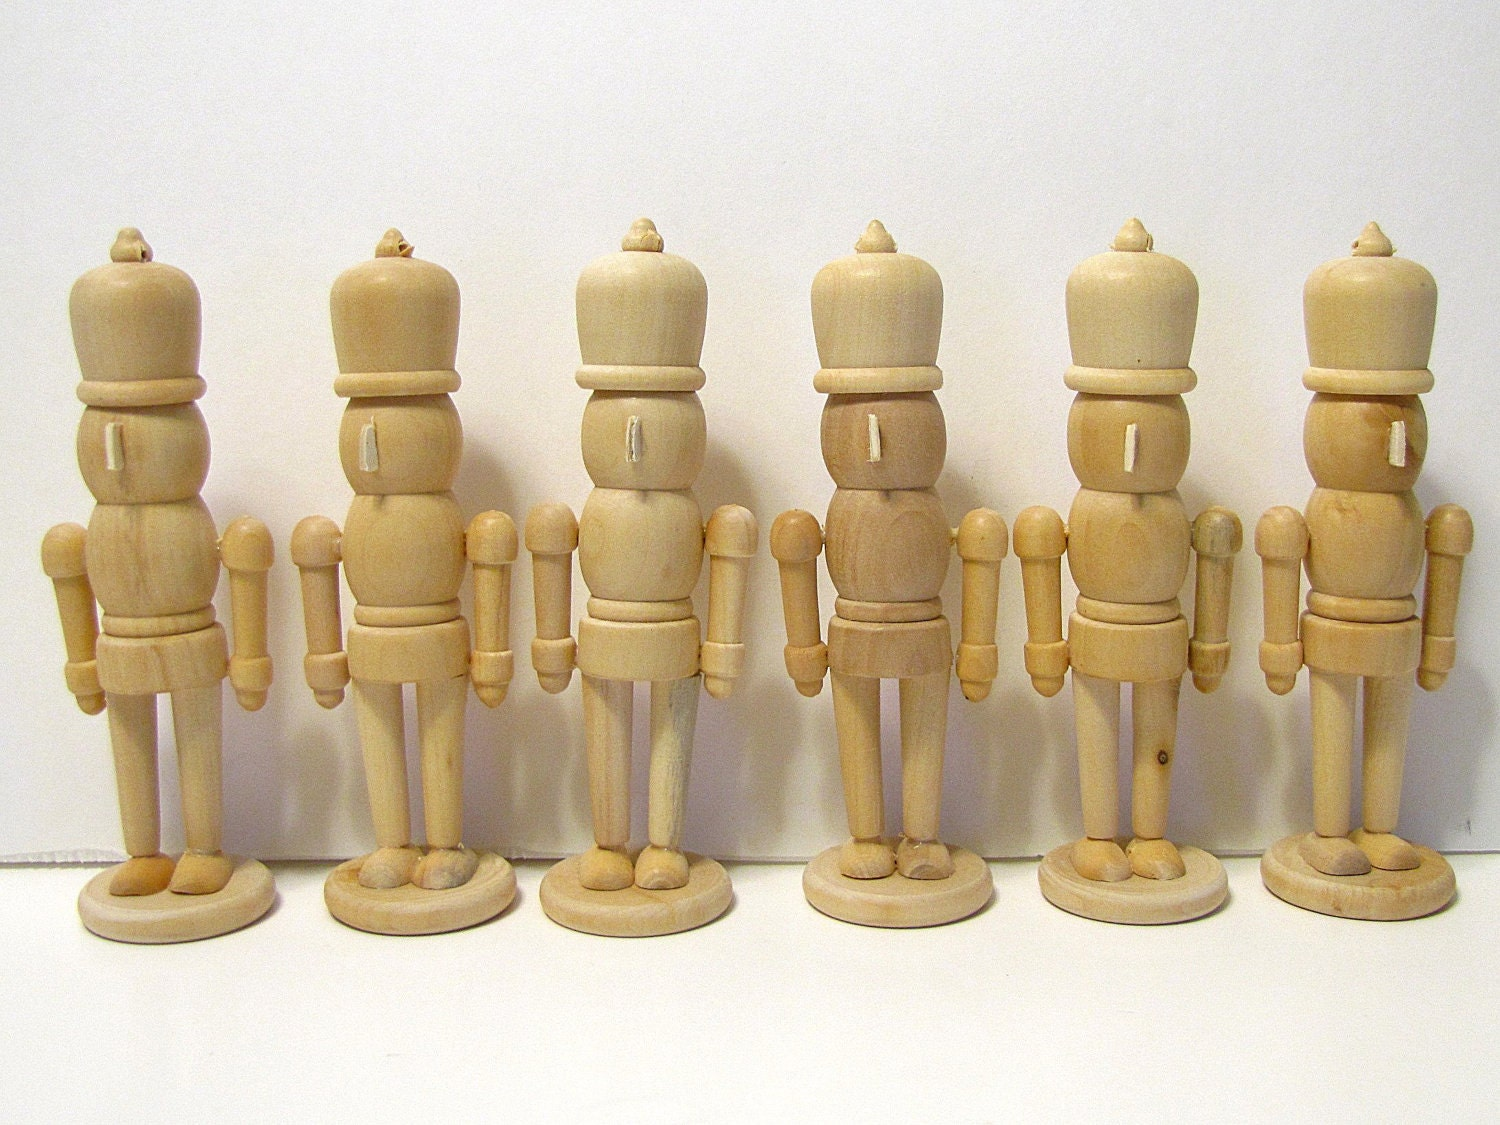 6 Nutcrackers, Unfinished Wood, DIY, Ready to Paint - ToleTreasures